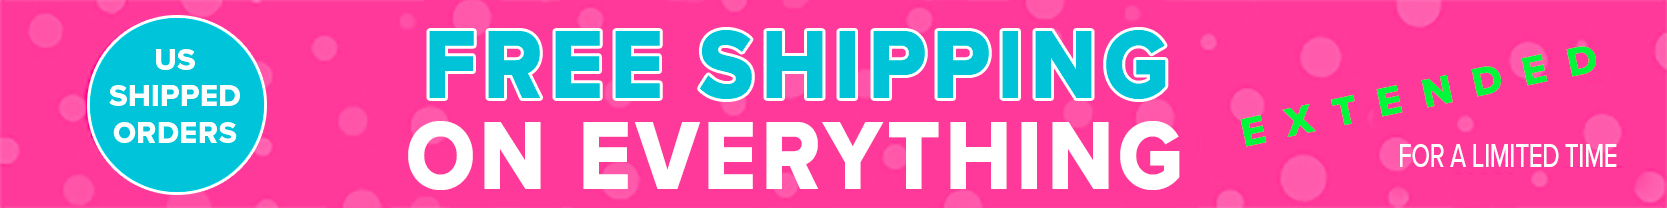 FREE-SHIPPING-US-ORDERS